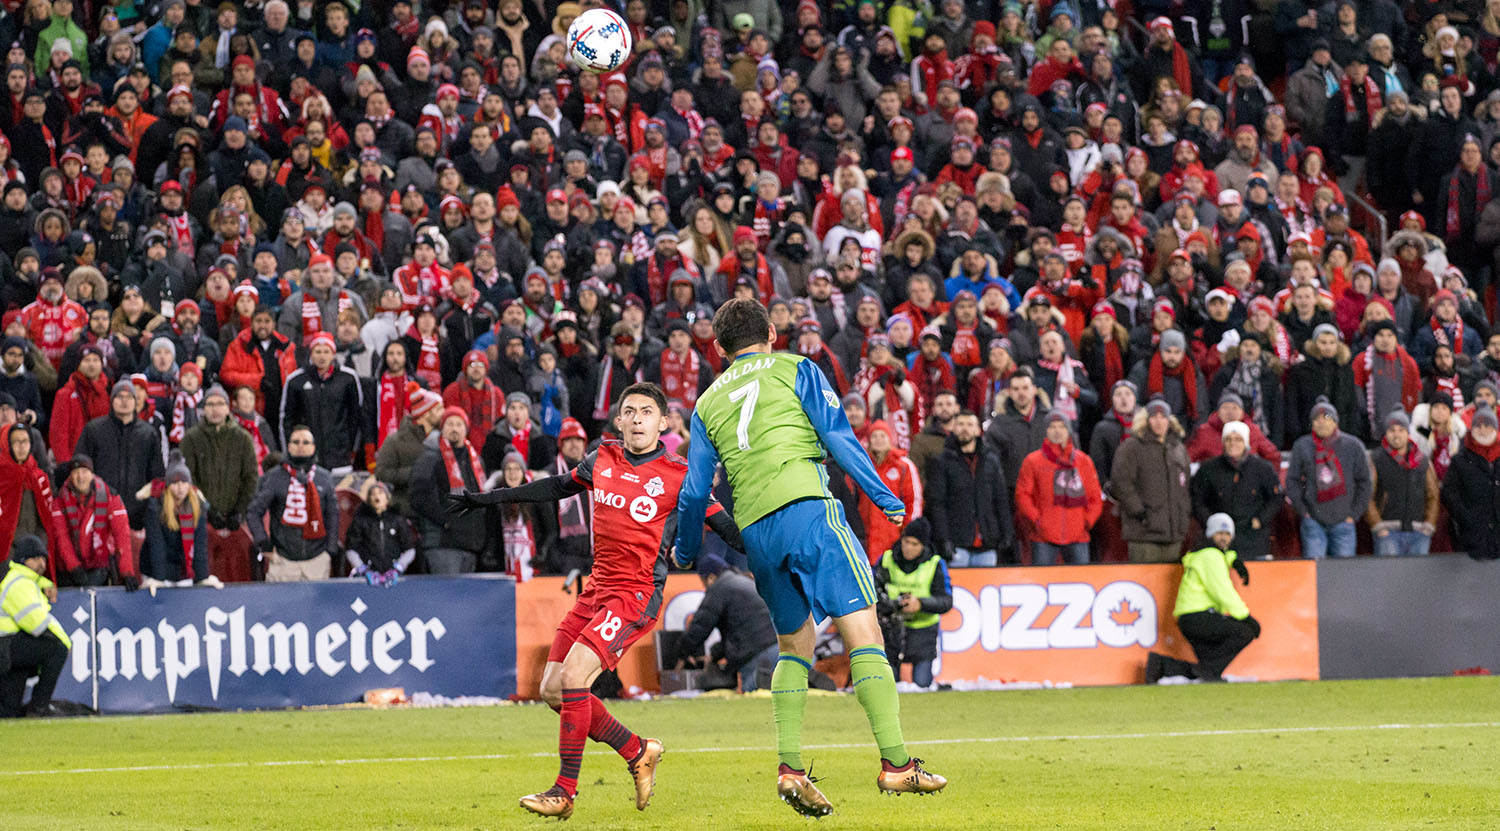 Marky Delgado awaits the landing of the ball in the attacking end during the MLS Cup playoffs in 2017.Image by Dennis Marciniak of denMAR Media.